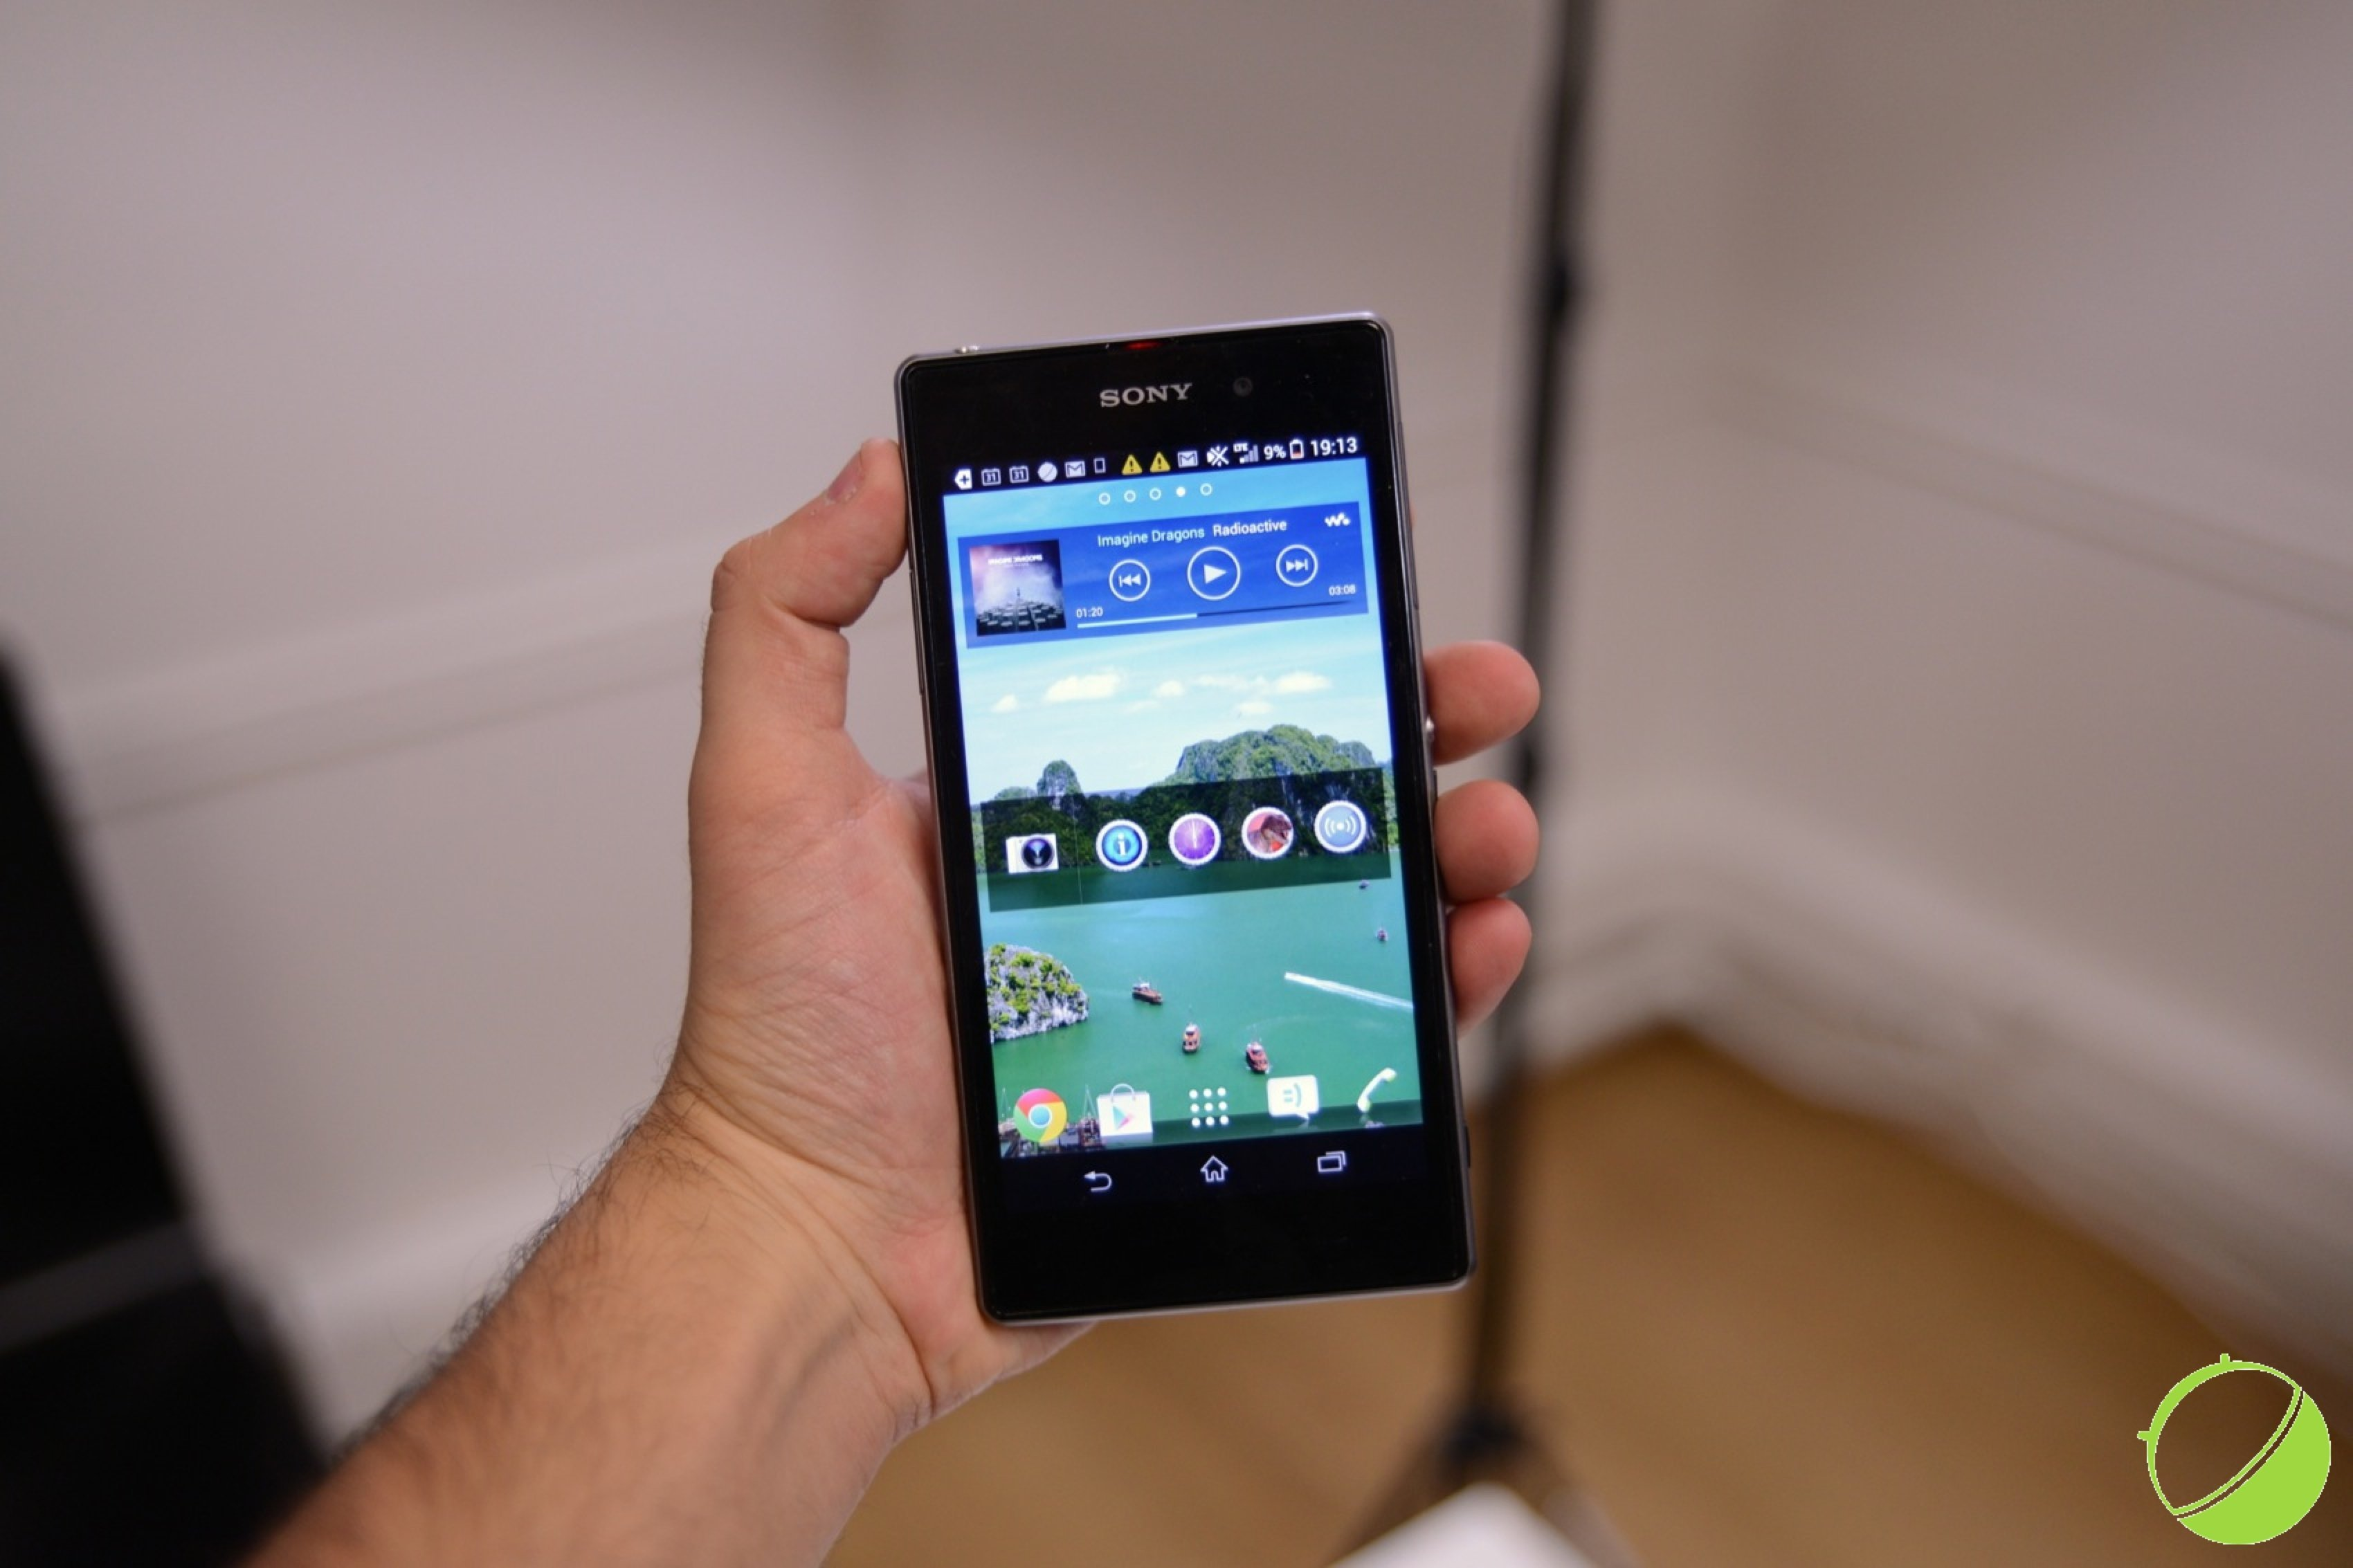 Test du Sony Xperia Z1, cap sur la photo ?